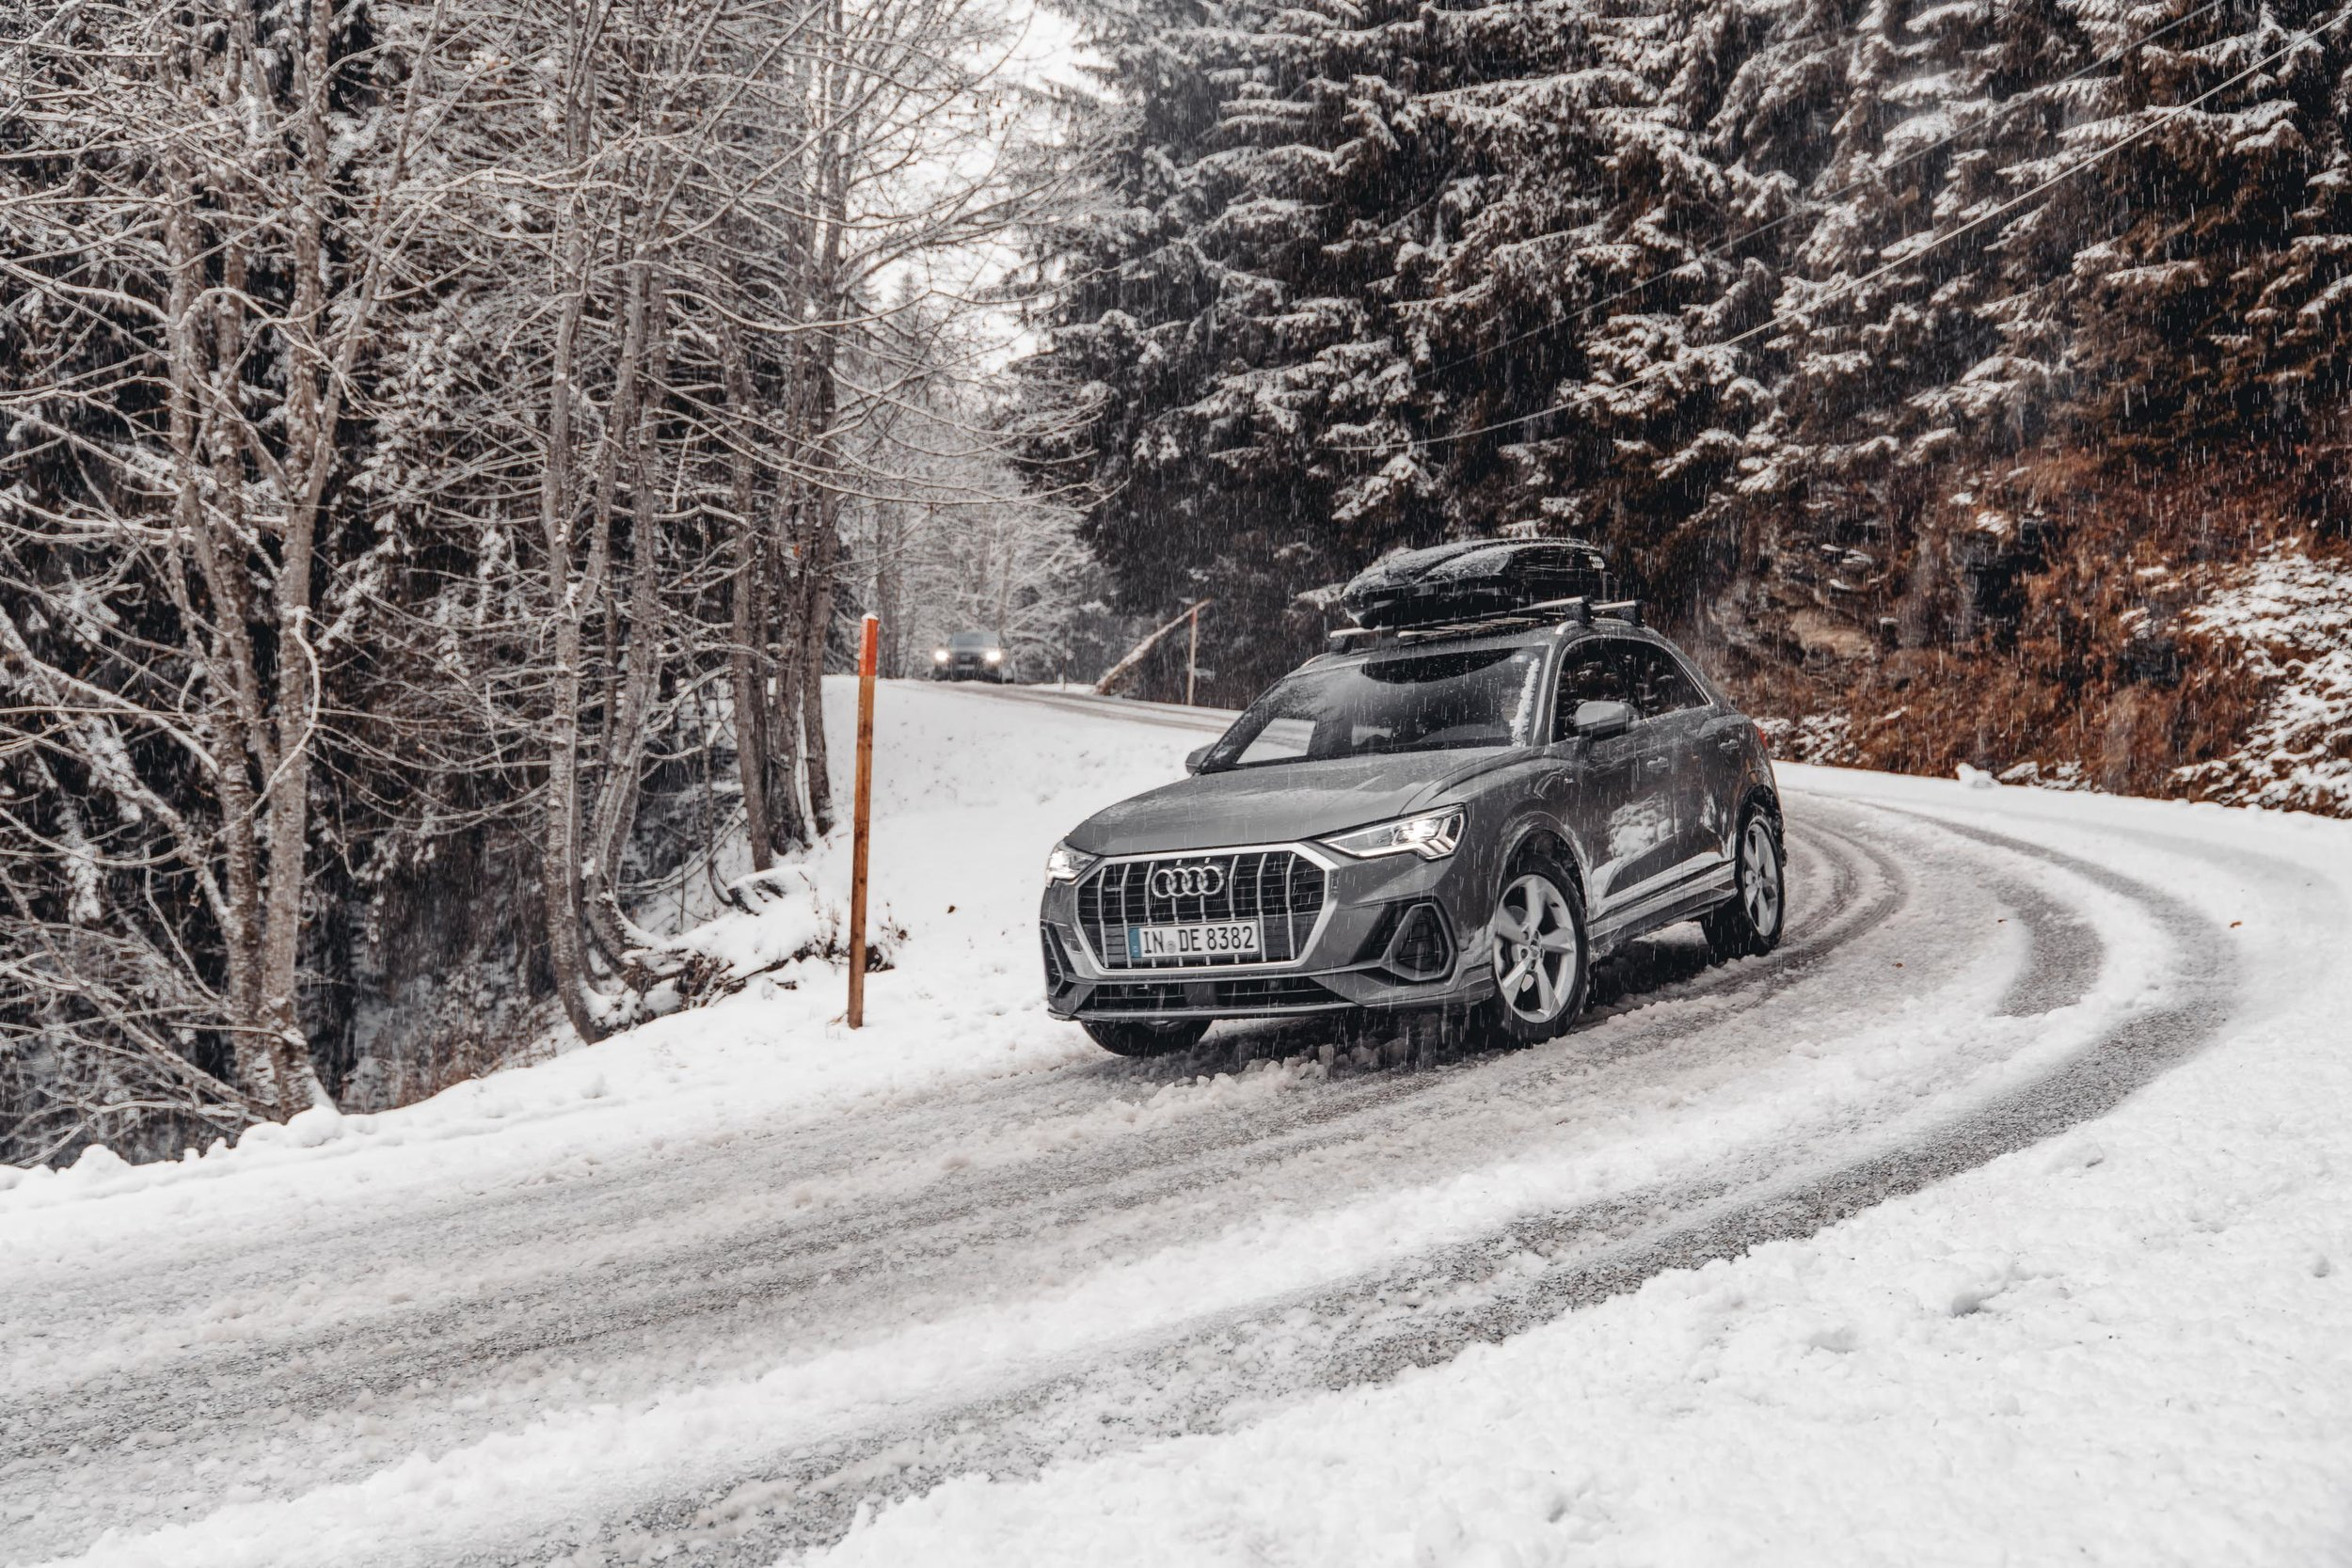 Maximilian-Otto_Best-of-the-Alps_Roadtrip_Winter-2018_19.jpg